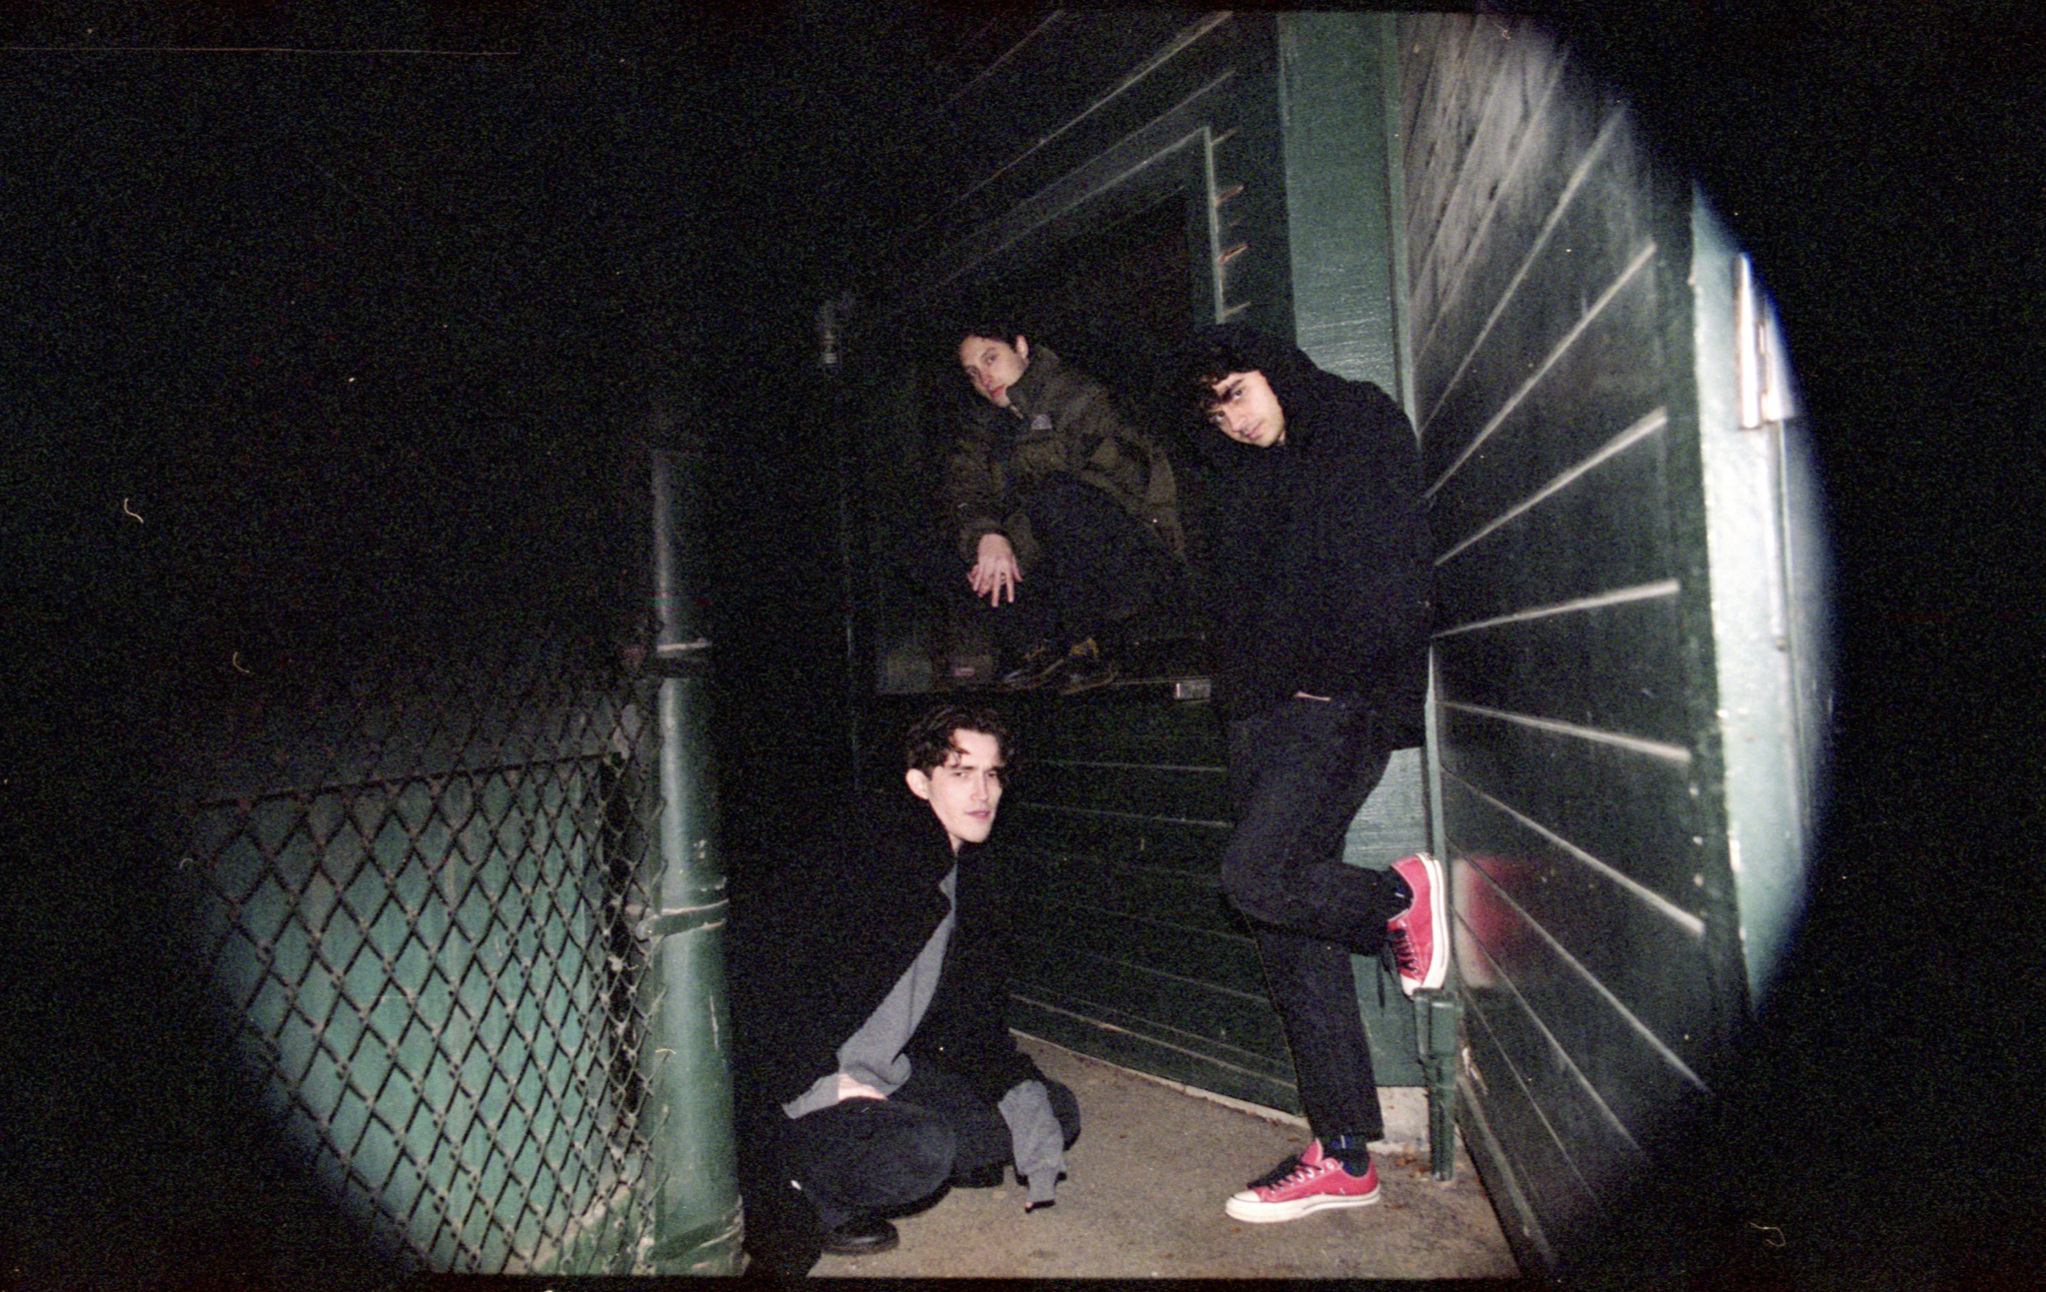 Younger Hunger, LA's Latest Alt Trio, Releases New Single 'Day Traitor'